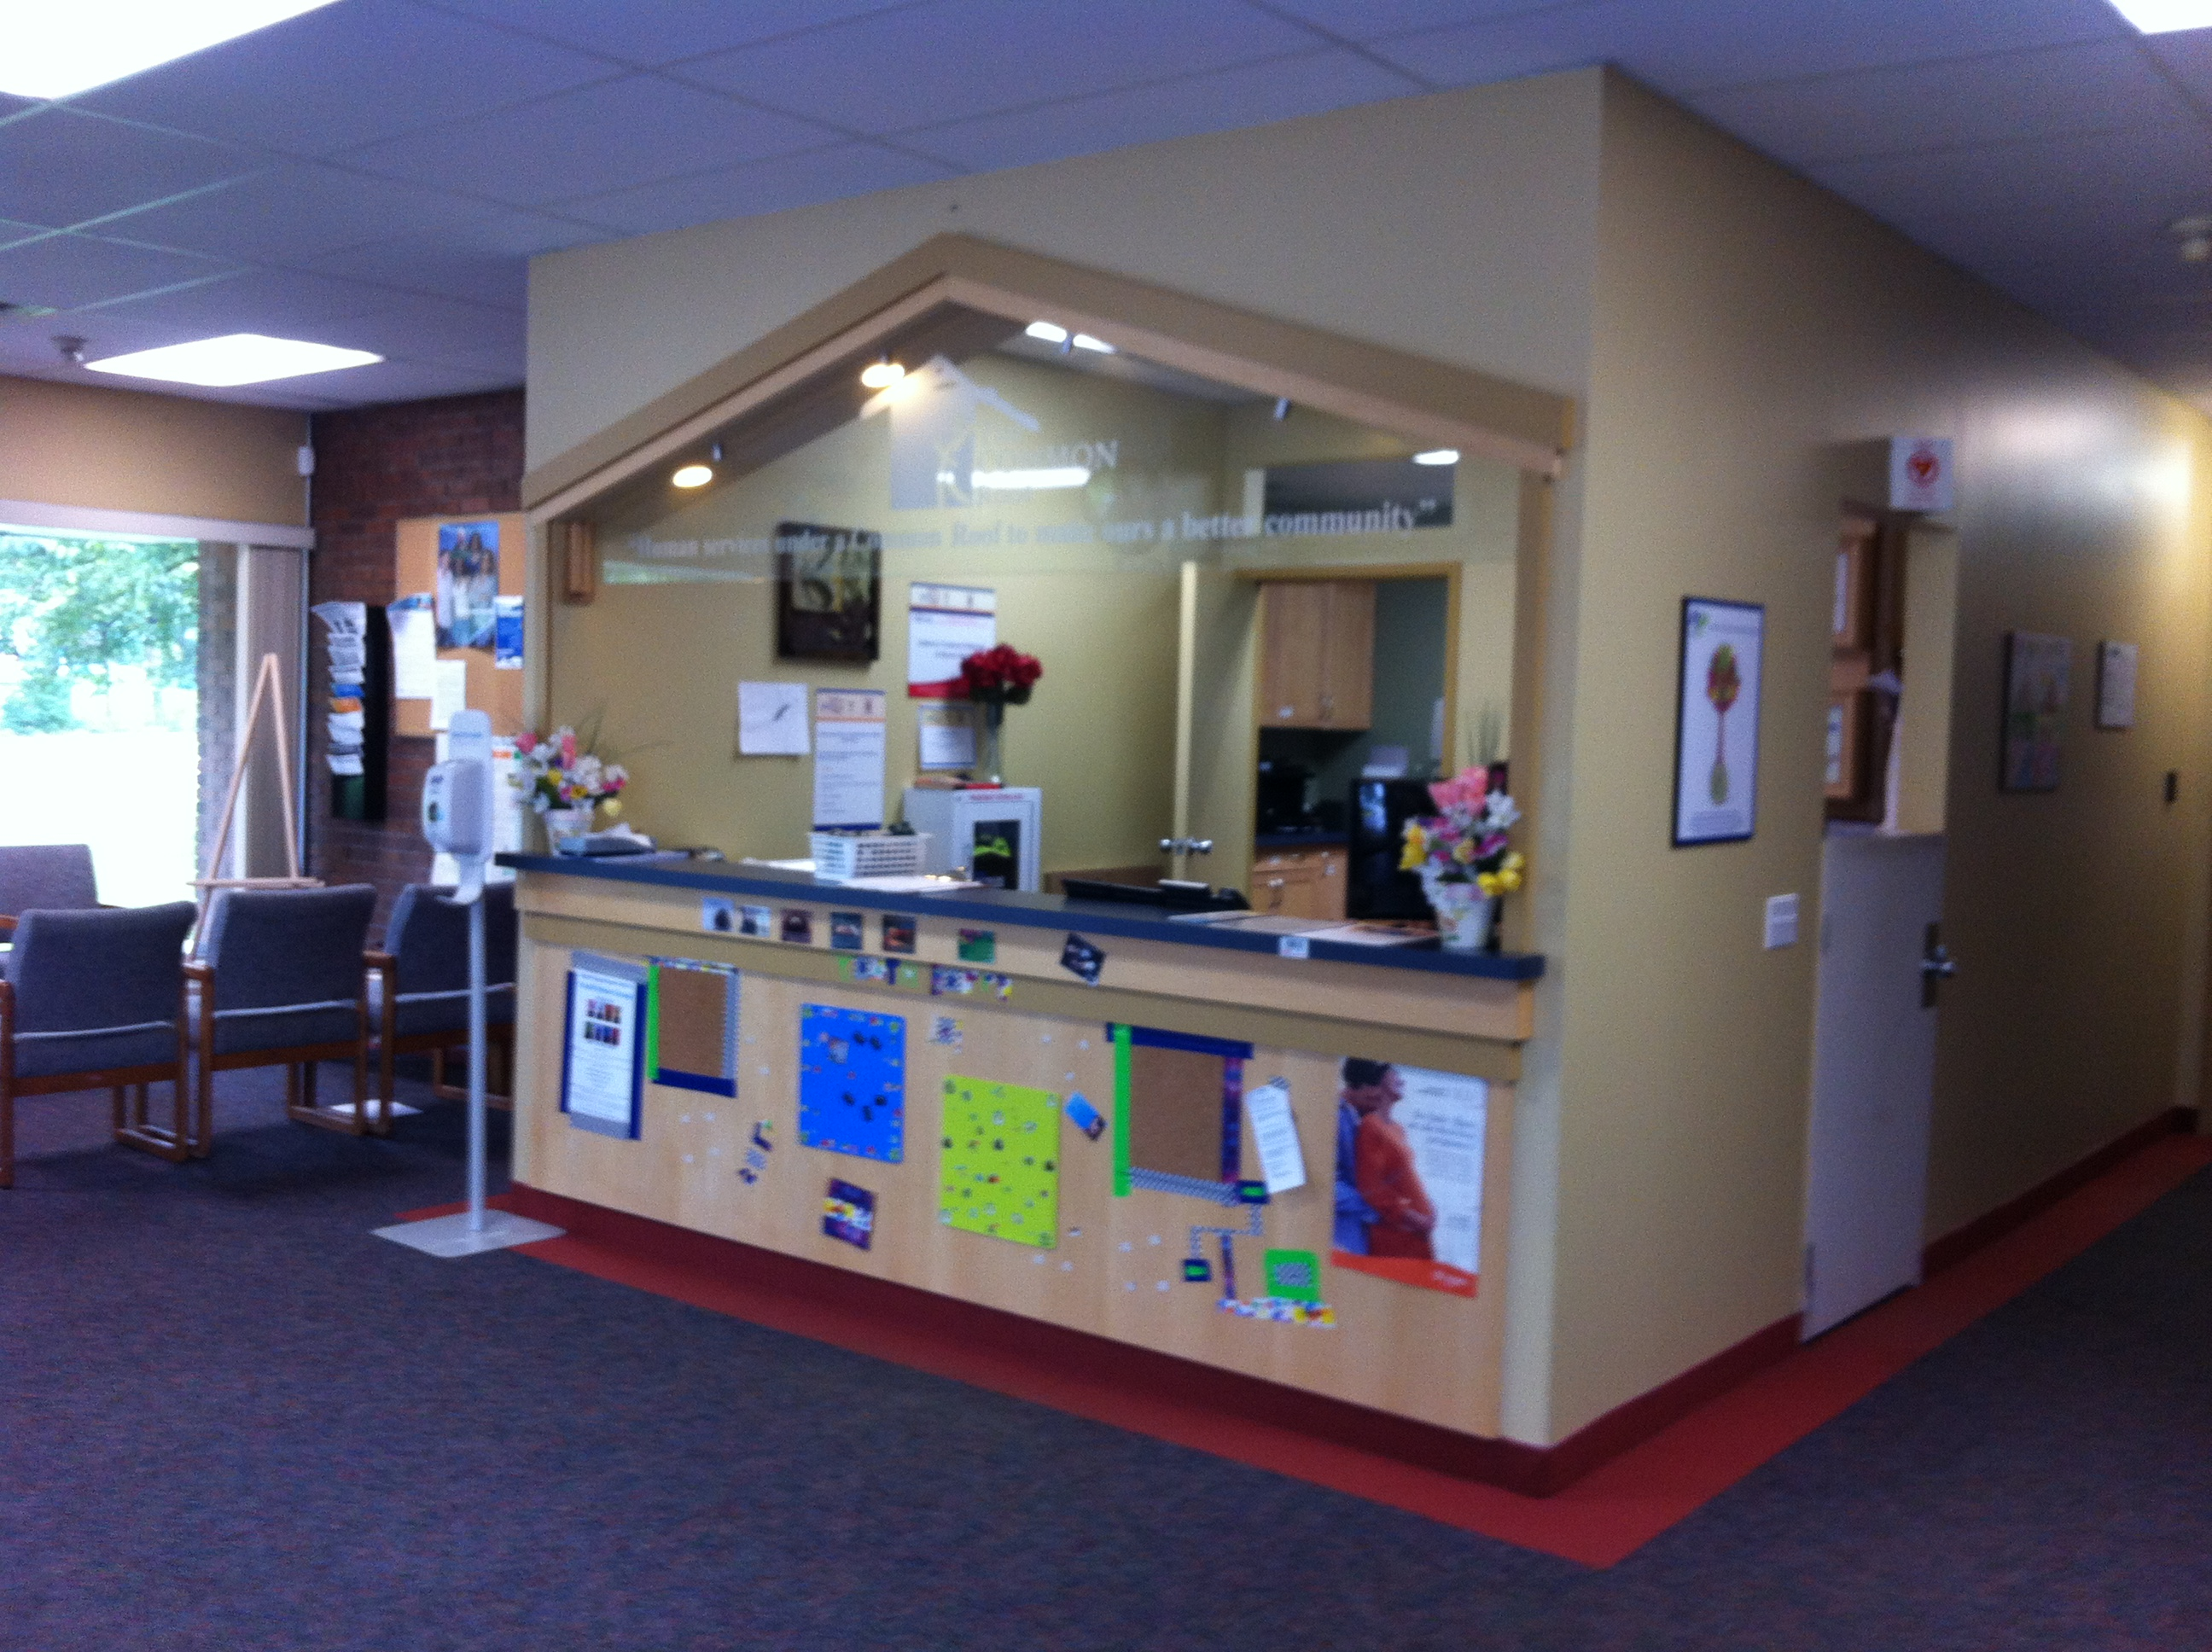 Common Roof Reception. A waiting area with pamphlets can be seen beside a large reception area. The reception desk/area is within a room that is open to the public through a large window and half wall. The half wall is covered in various posters and signs.